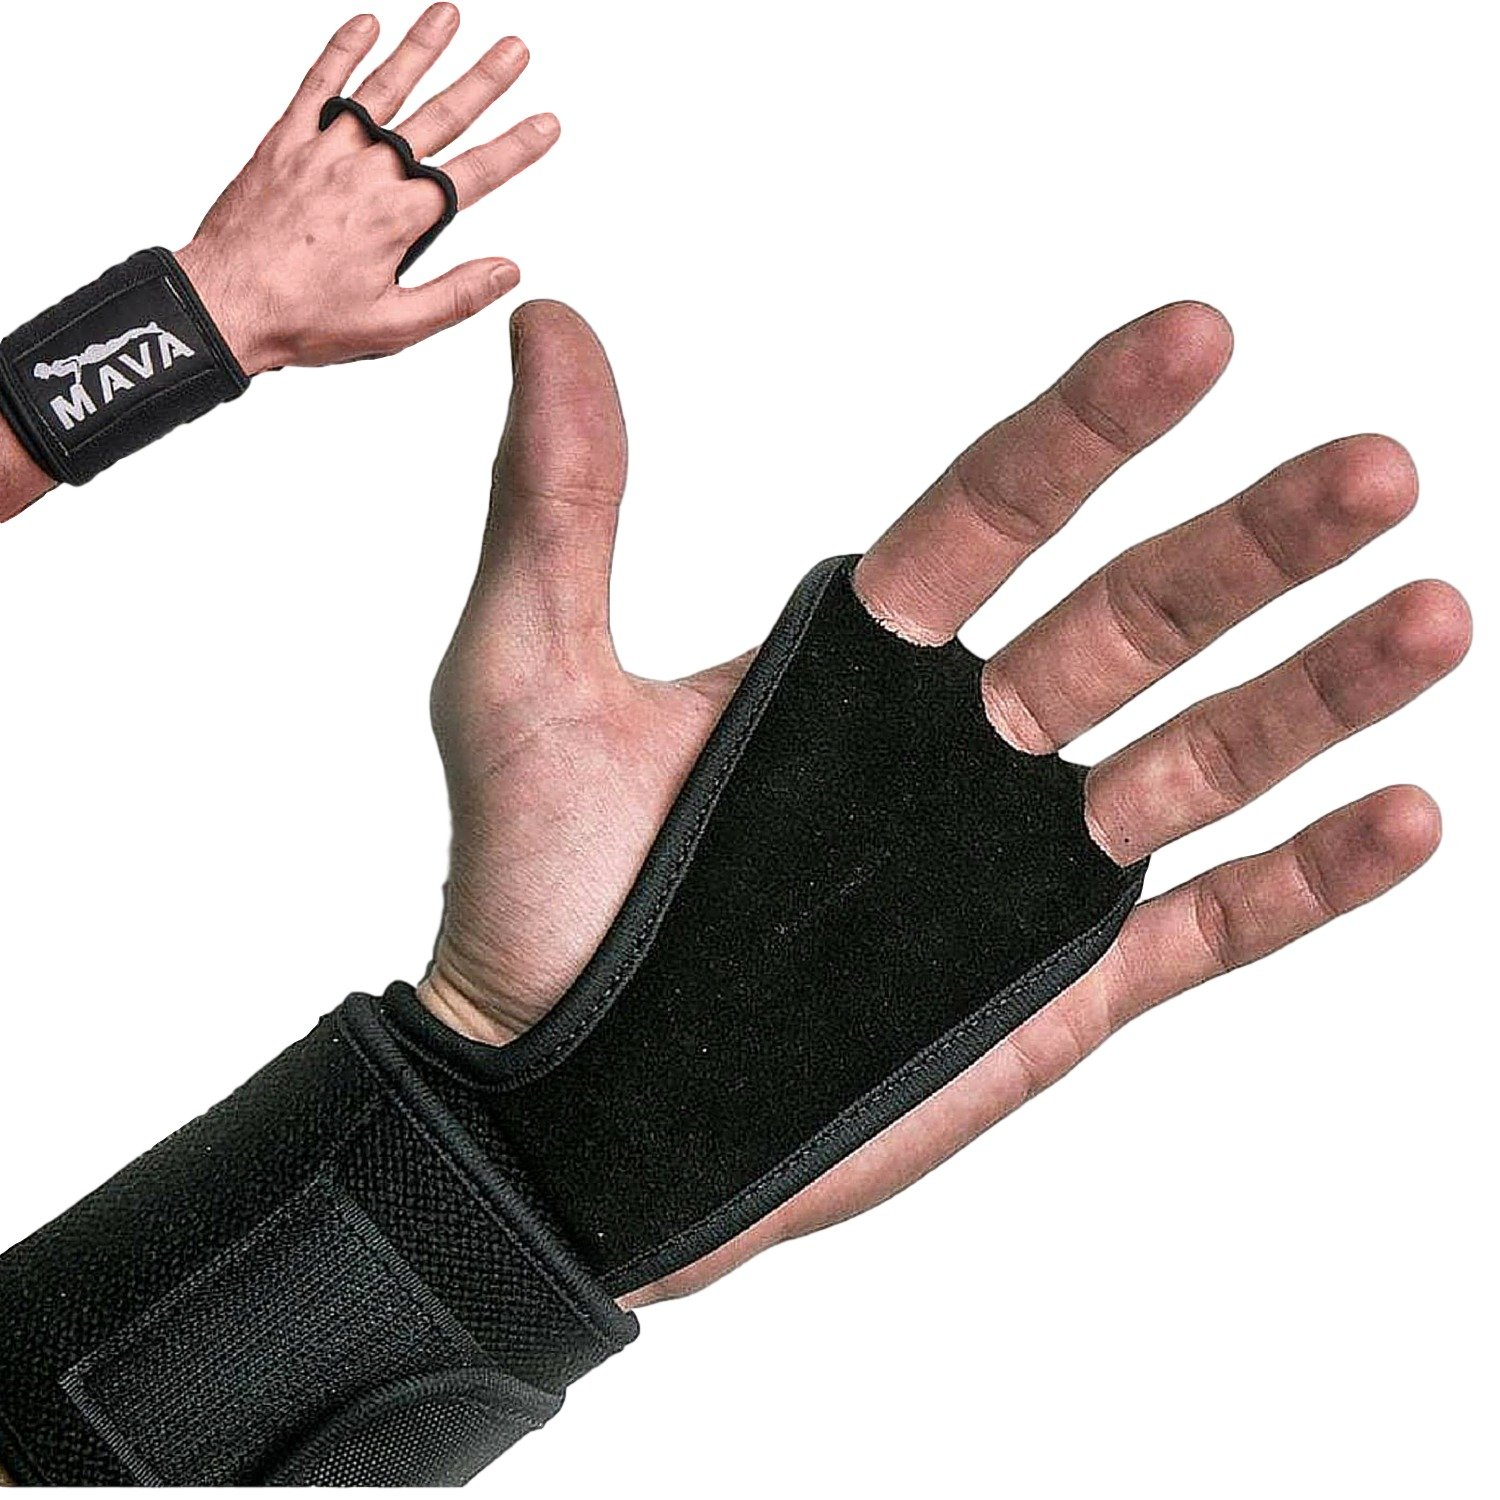 Mava Fitness Gloves: Mava Sports Hand Grips With Wrist Support Wraps